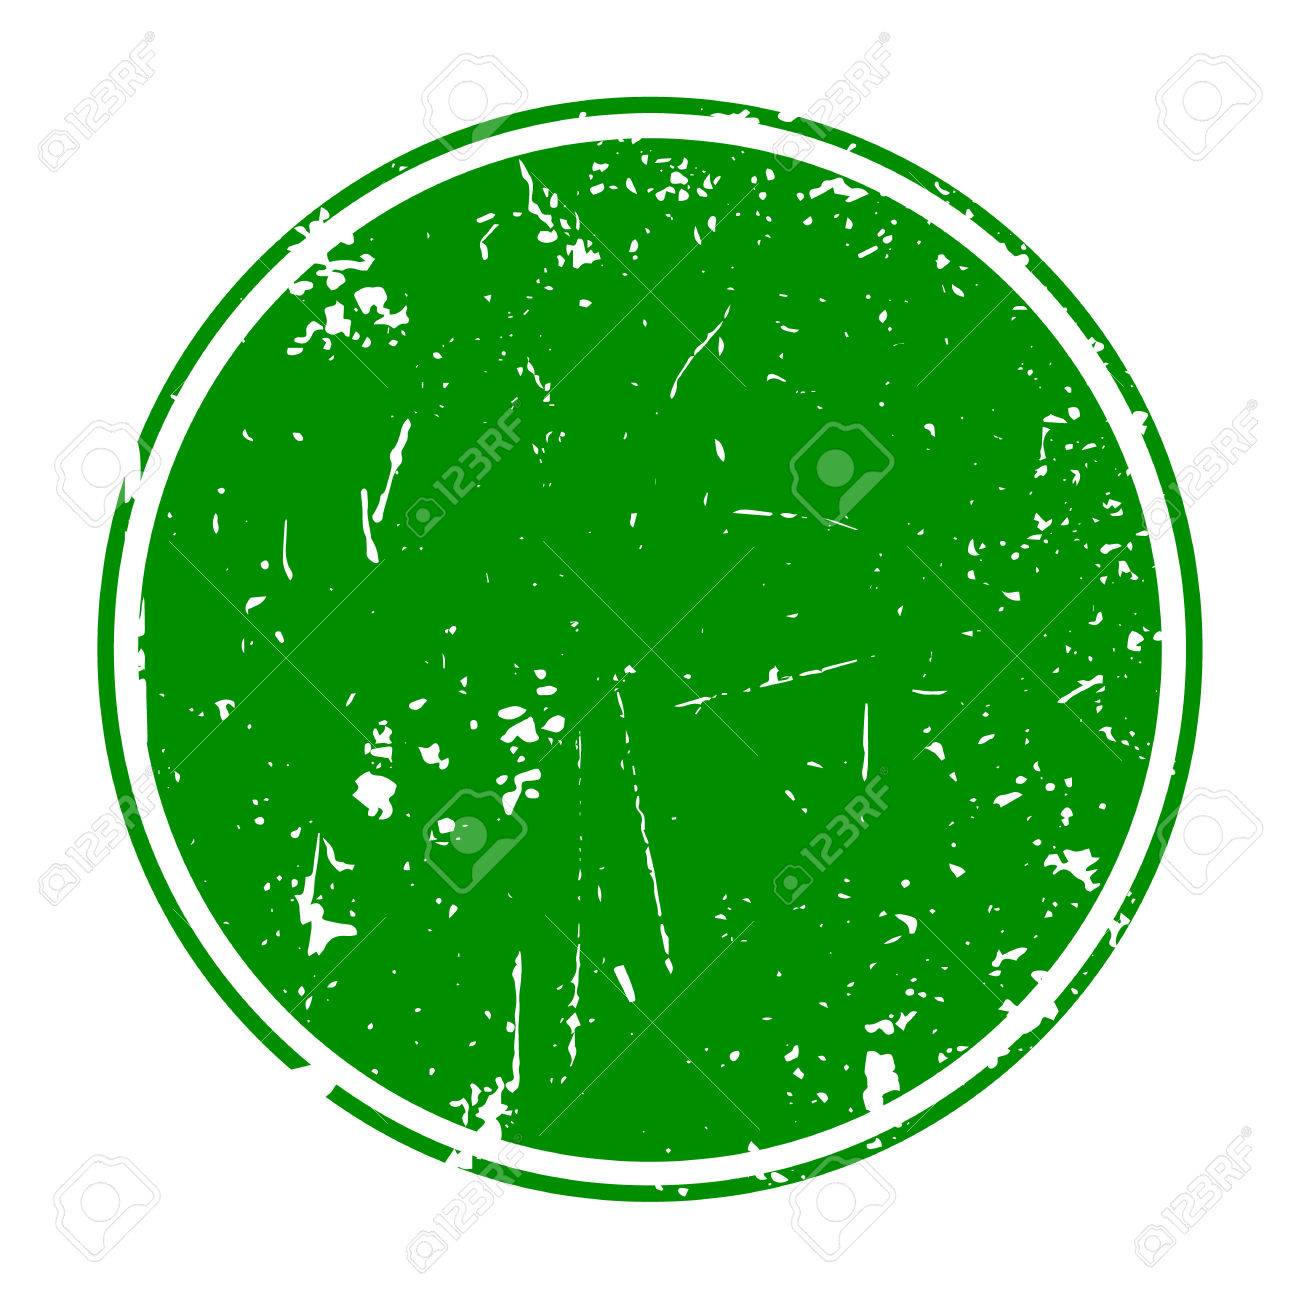 grunge green blank rubber stamp template royalty free cliparts